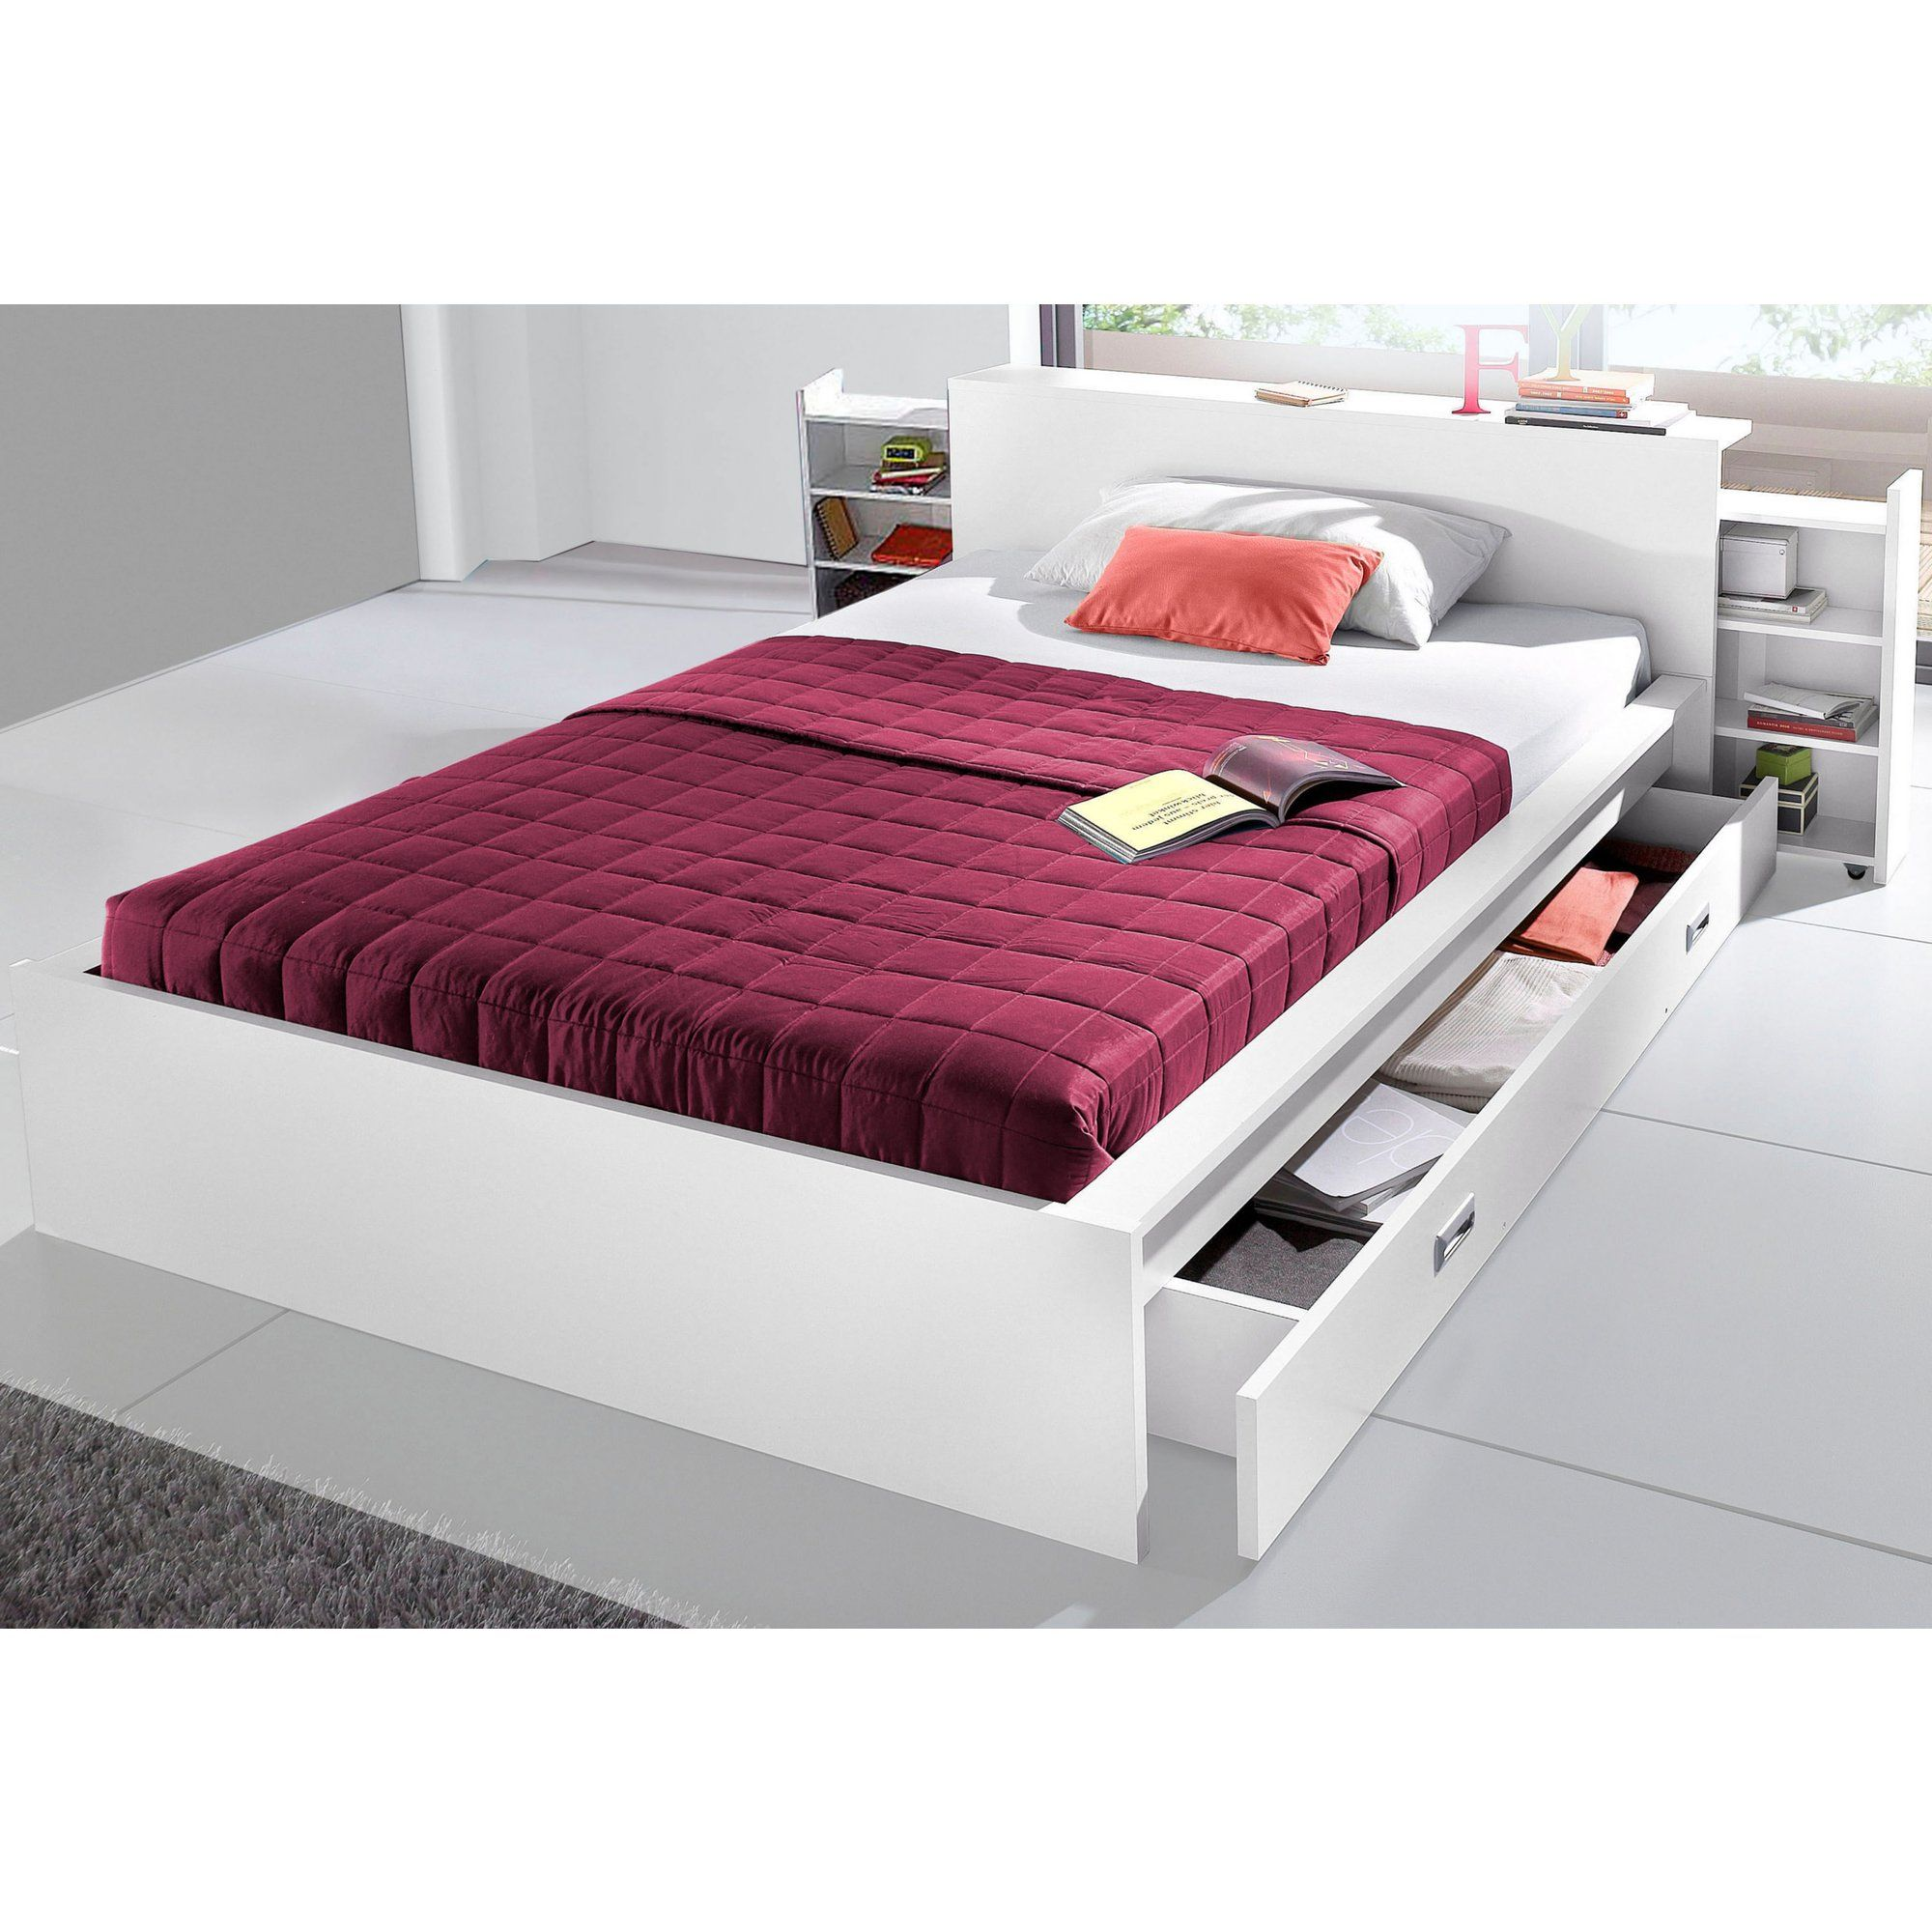 futonbett in 3 verschiedenen ausf  hrungen made in germany lit futon 1 ou 2 personne s  avec   tag  re s  coulissante s   lit      rh   pinterest